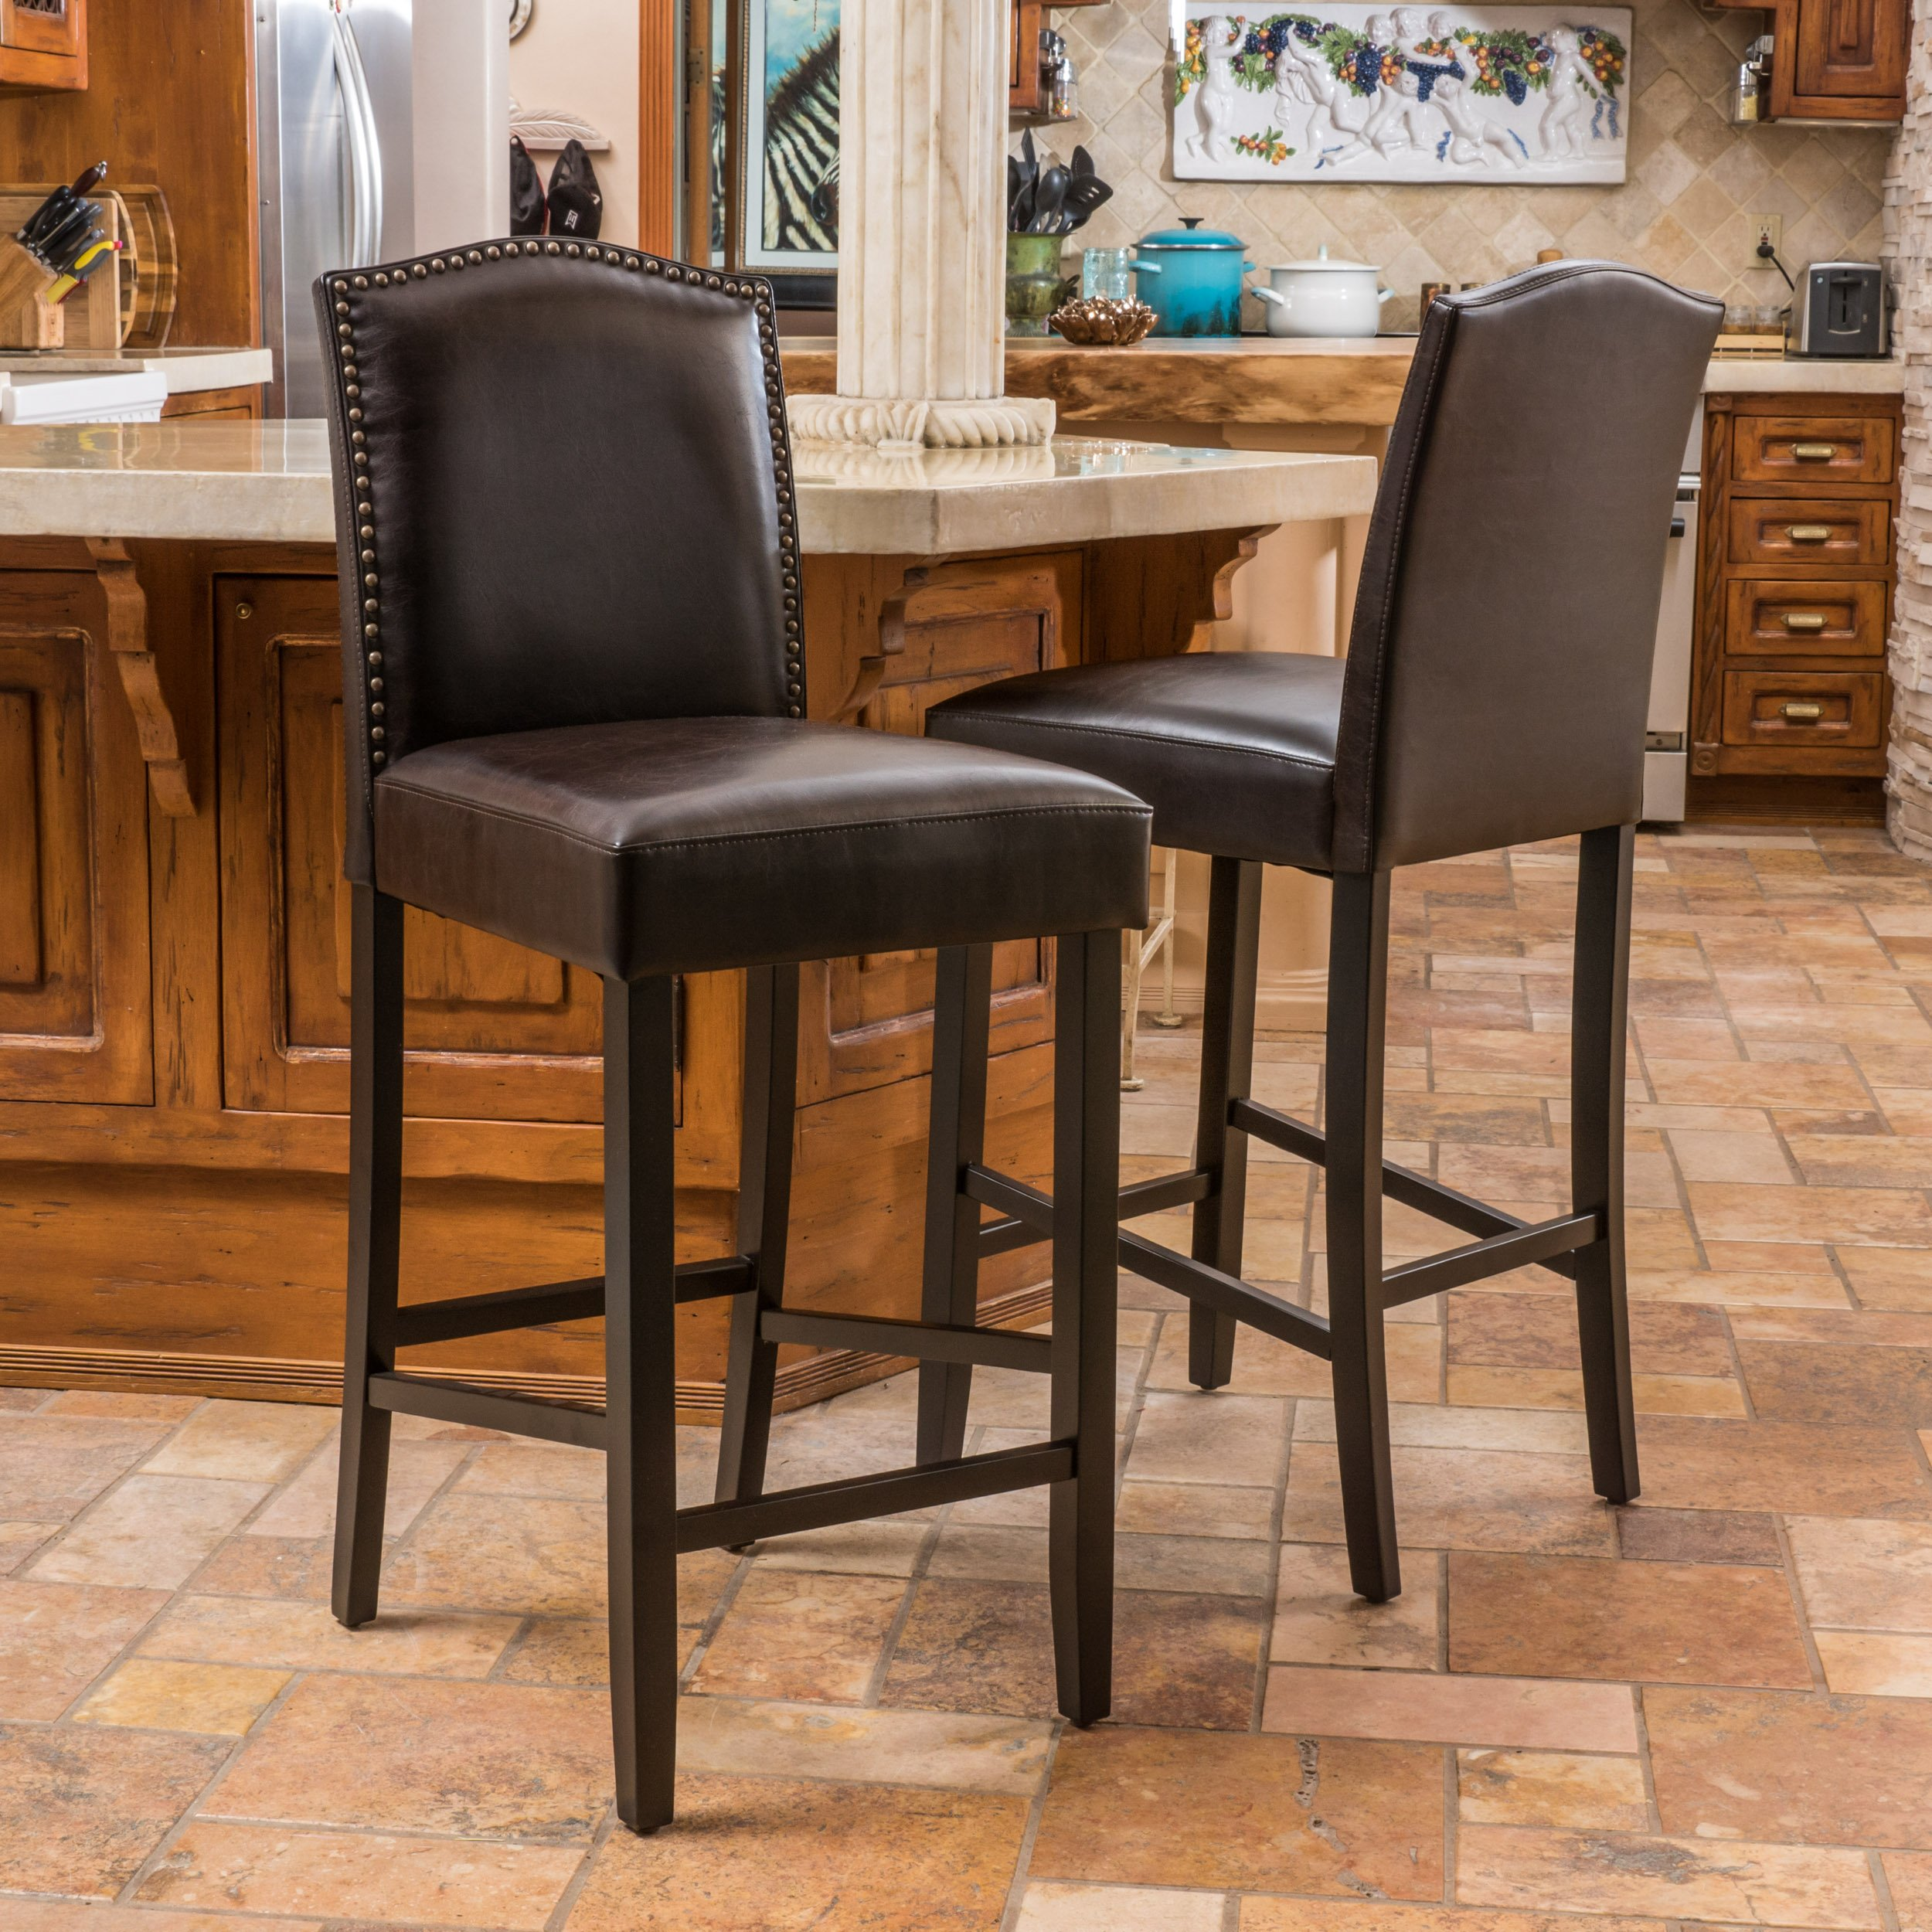 Auburn Bonded Leather Backed Bar Stool with Nail Head Accents (Brown) (Set of 2)